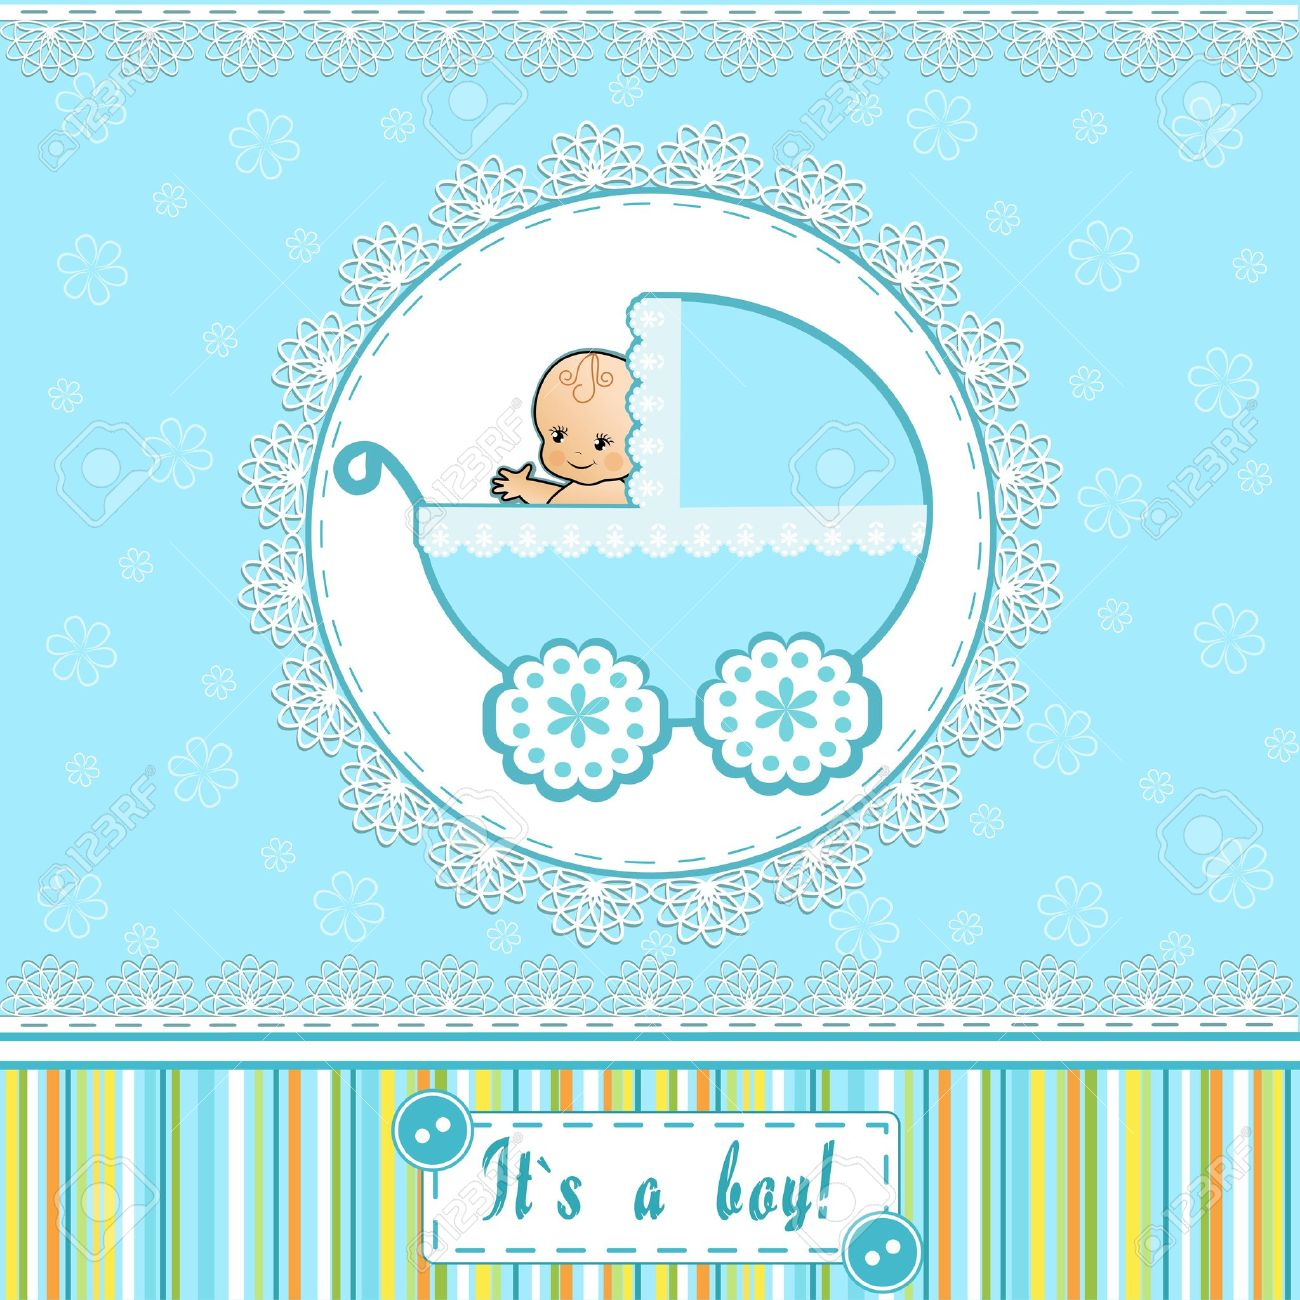 Baby Shower Card Vector Illustration Royalty Free Cliparts, Vectors ...